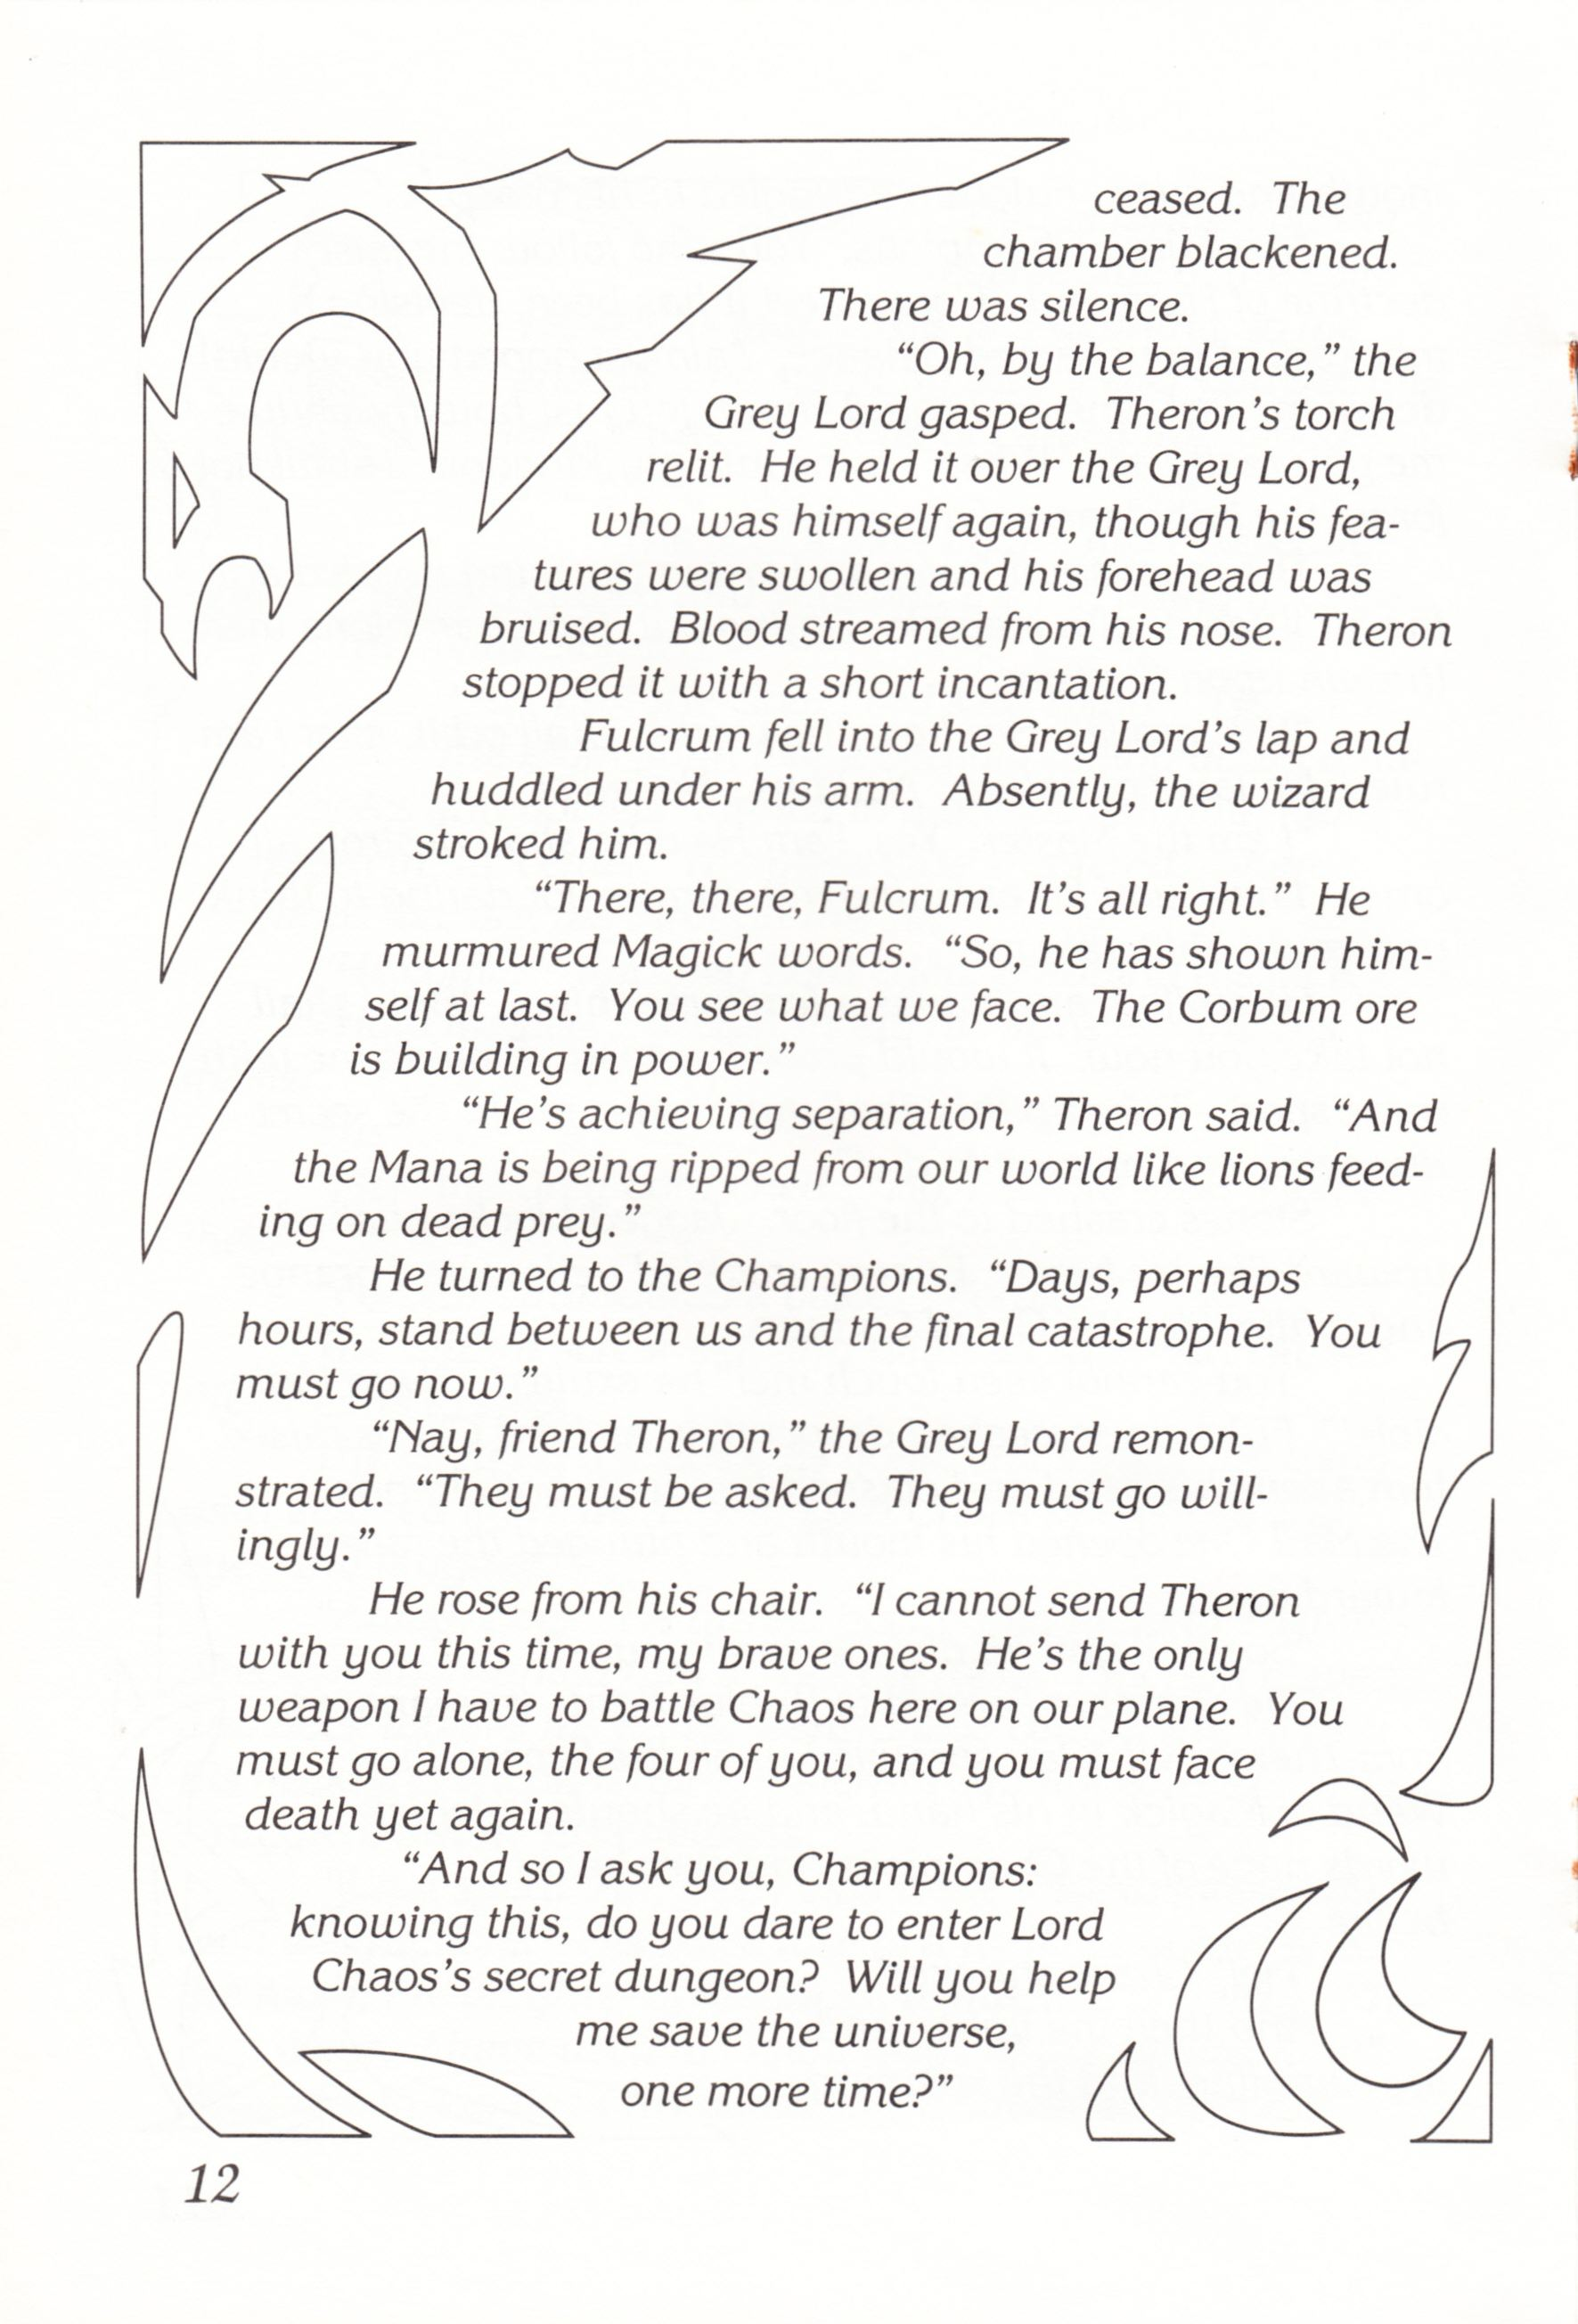 Game - Chaos Strikes Back - UK - Atari ST - Manual - Page 014 - Scan